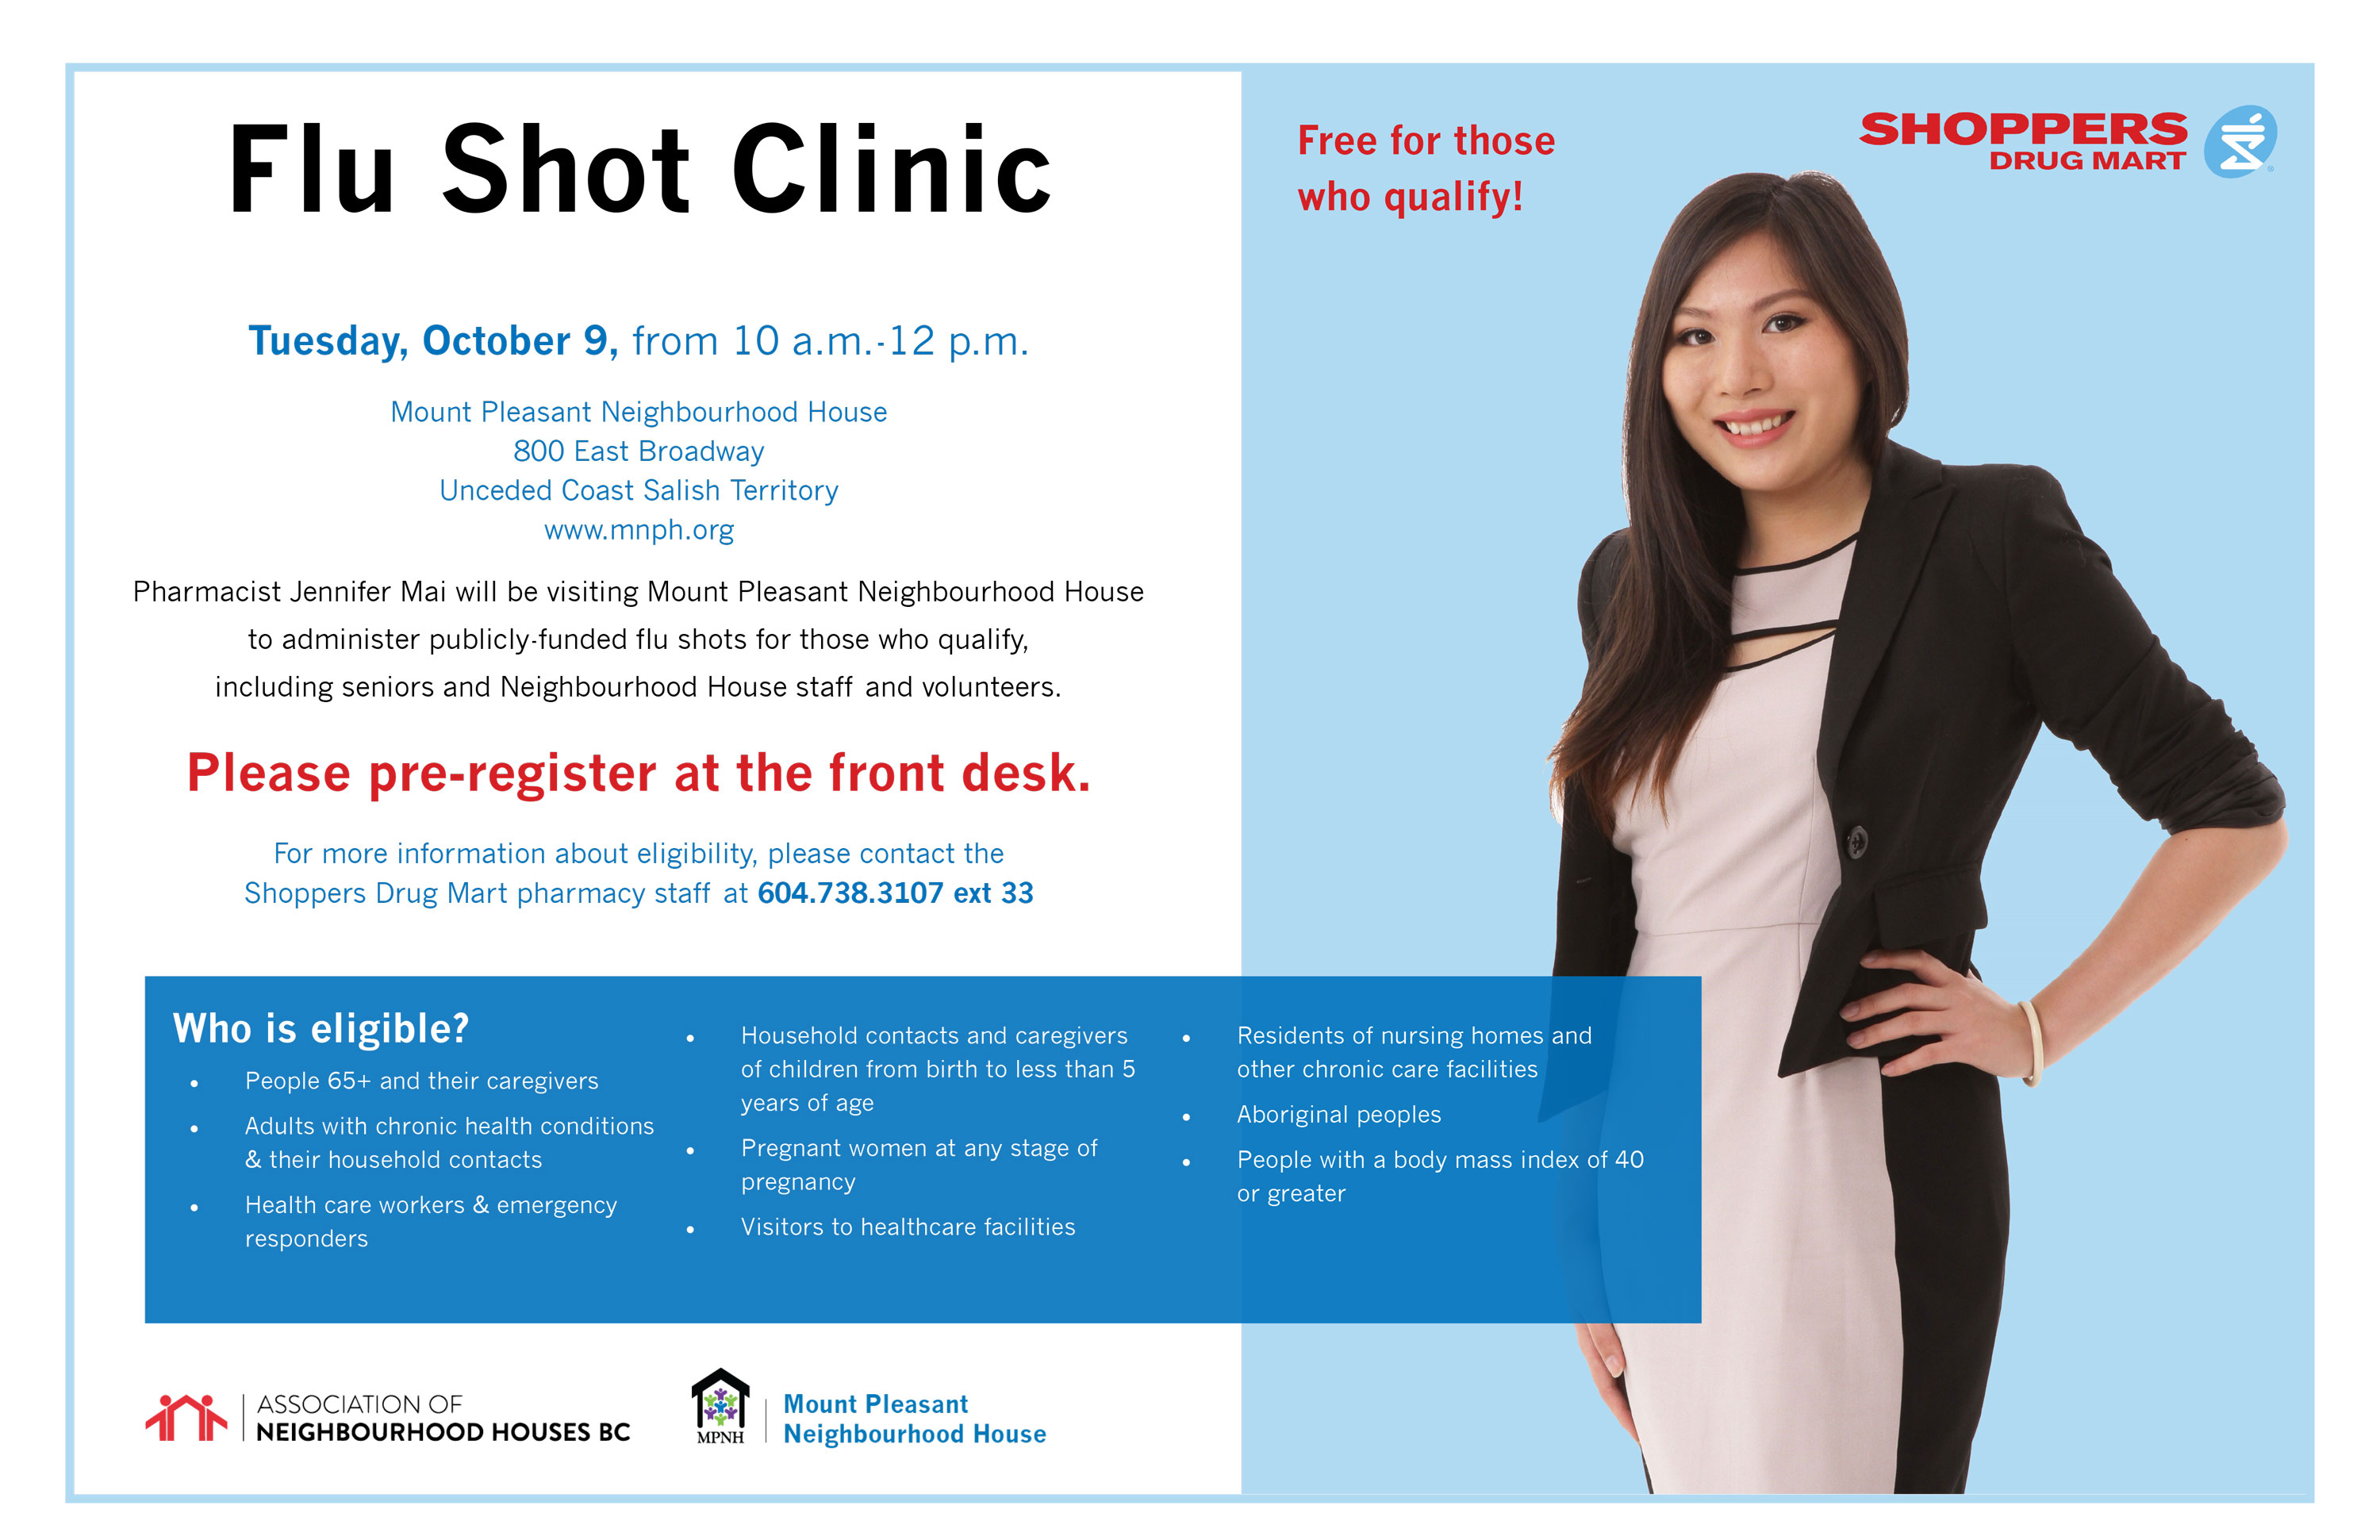 are flu shots free at shoppers drug mart